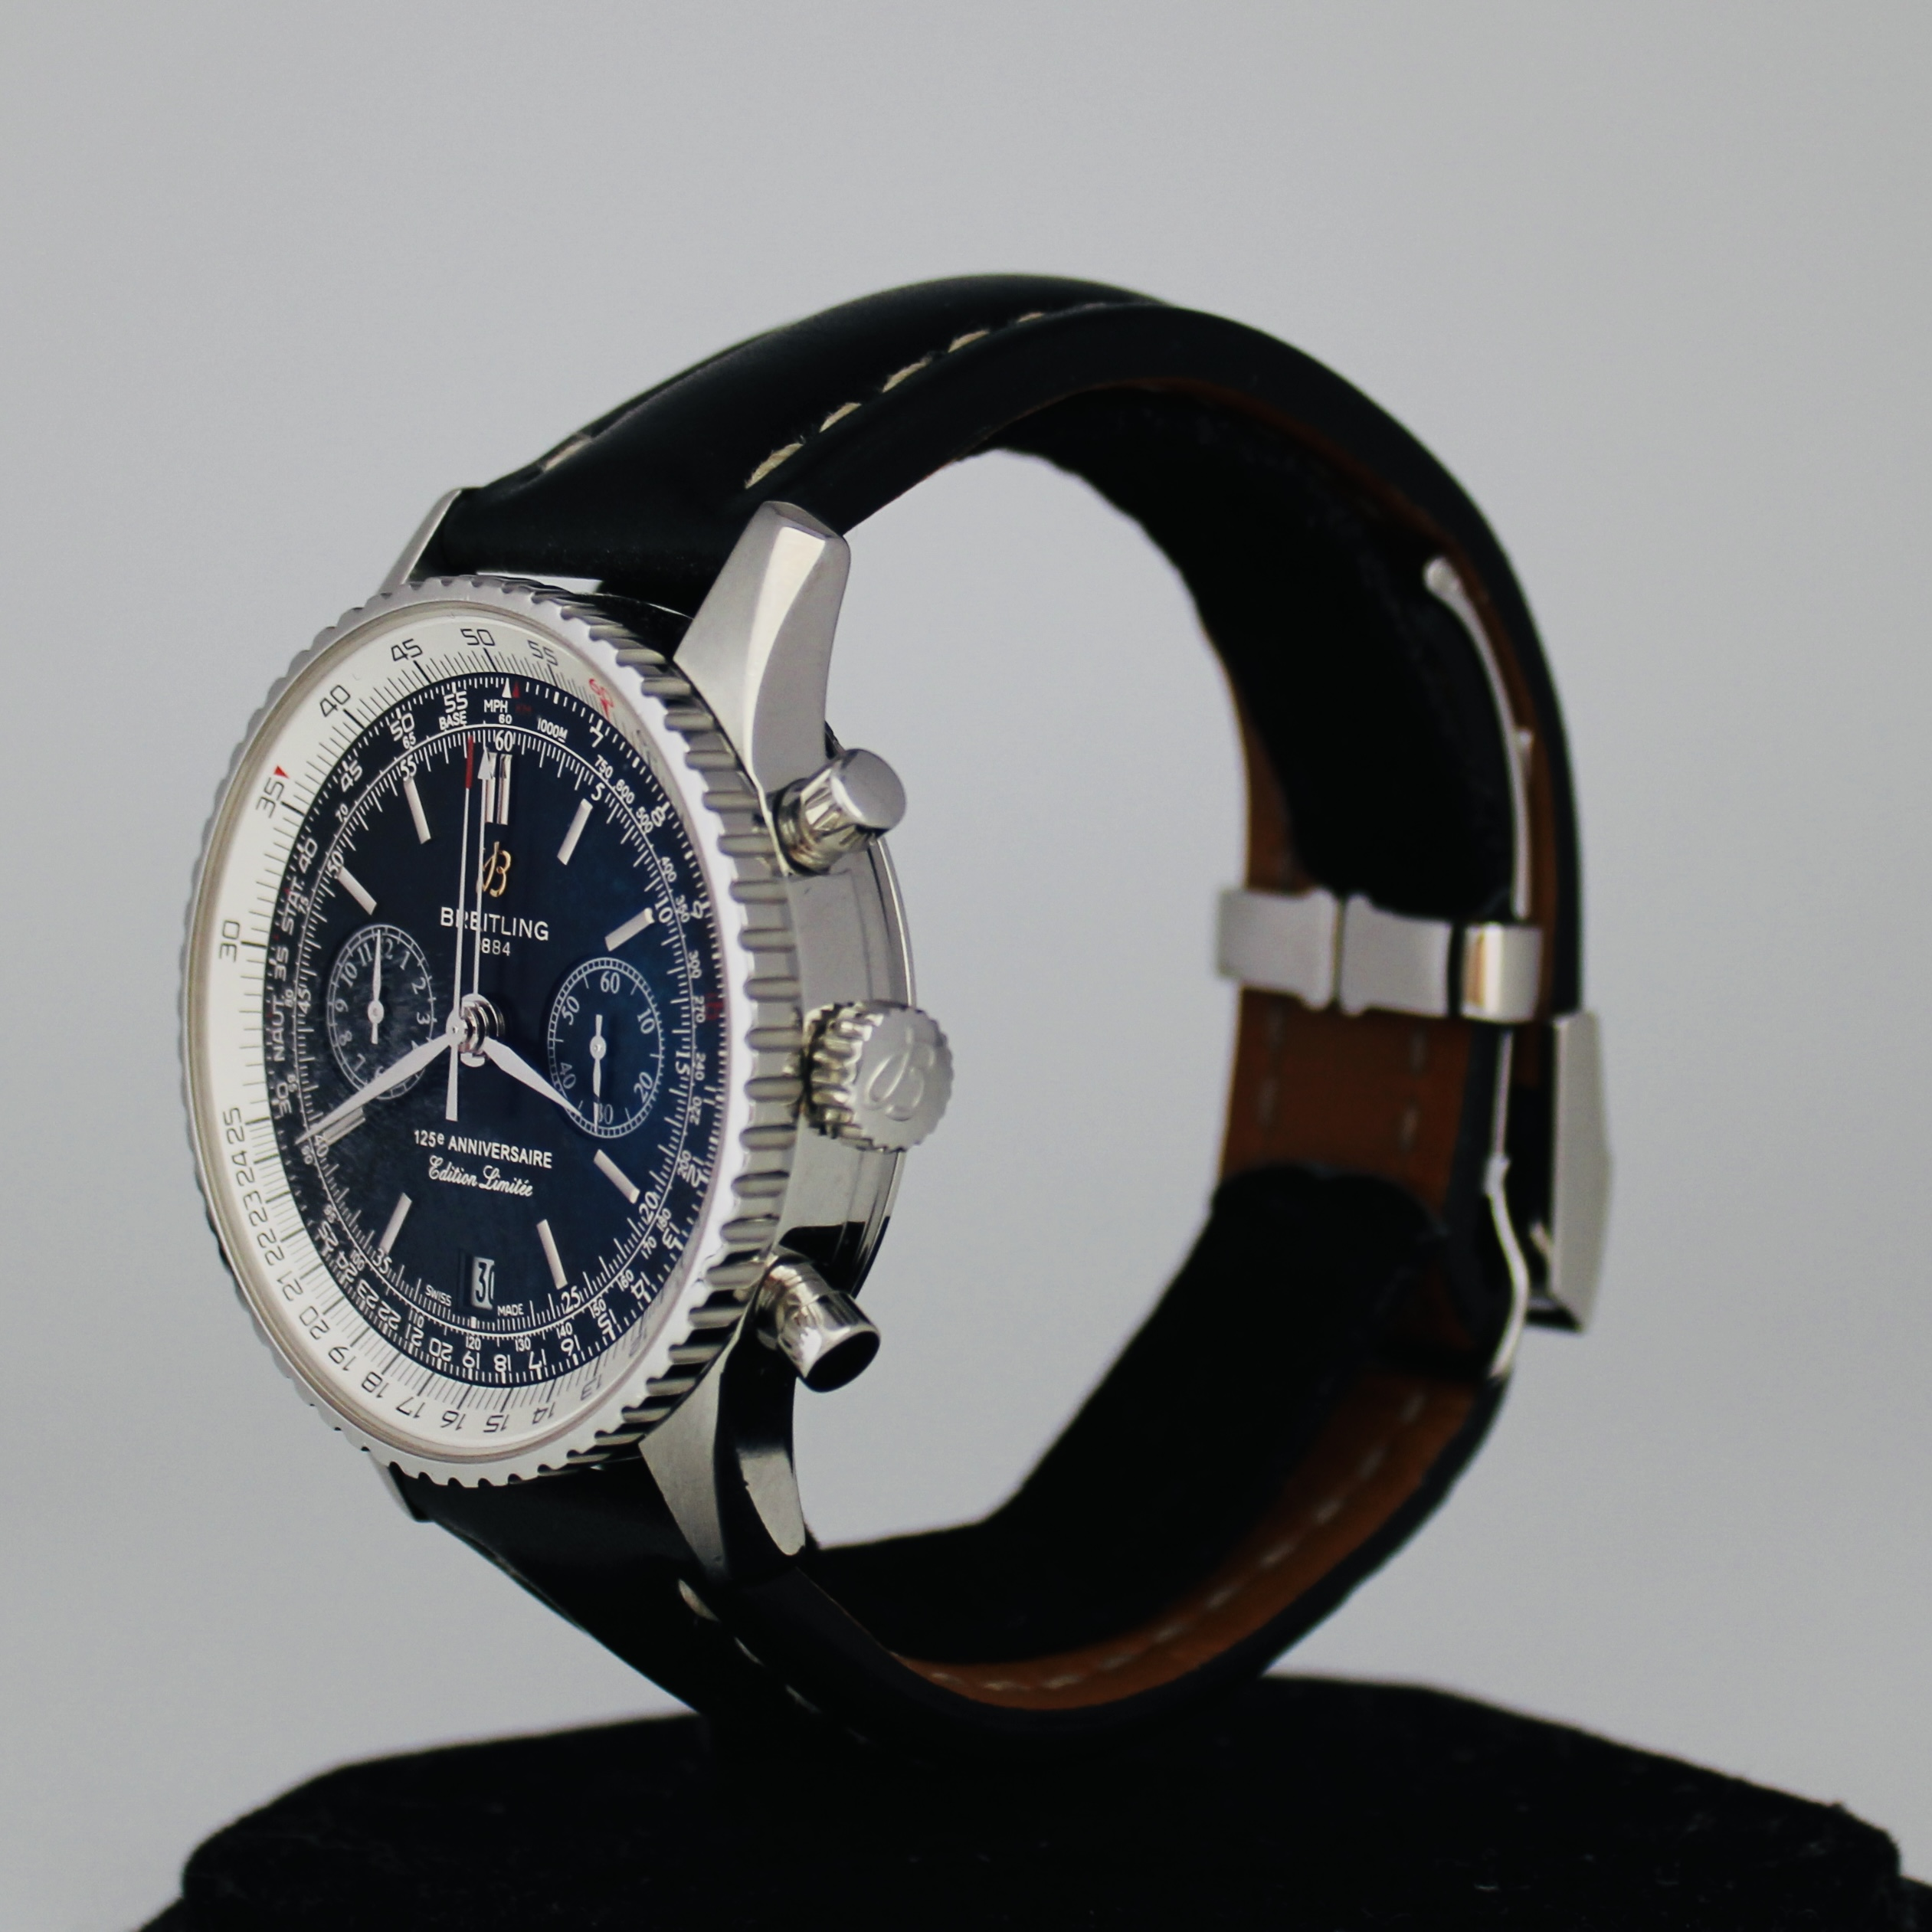 Breitling Navitimer 125th Anniversary Limited Edition ref A26322 - Image 2 of 6